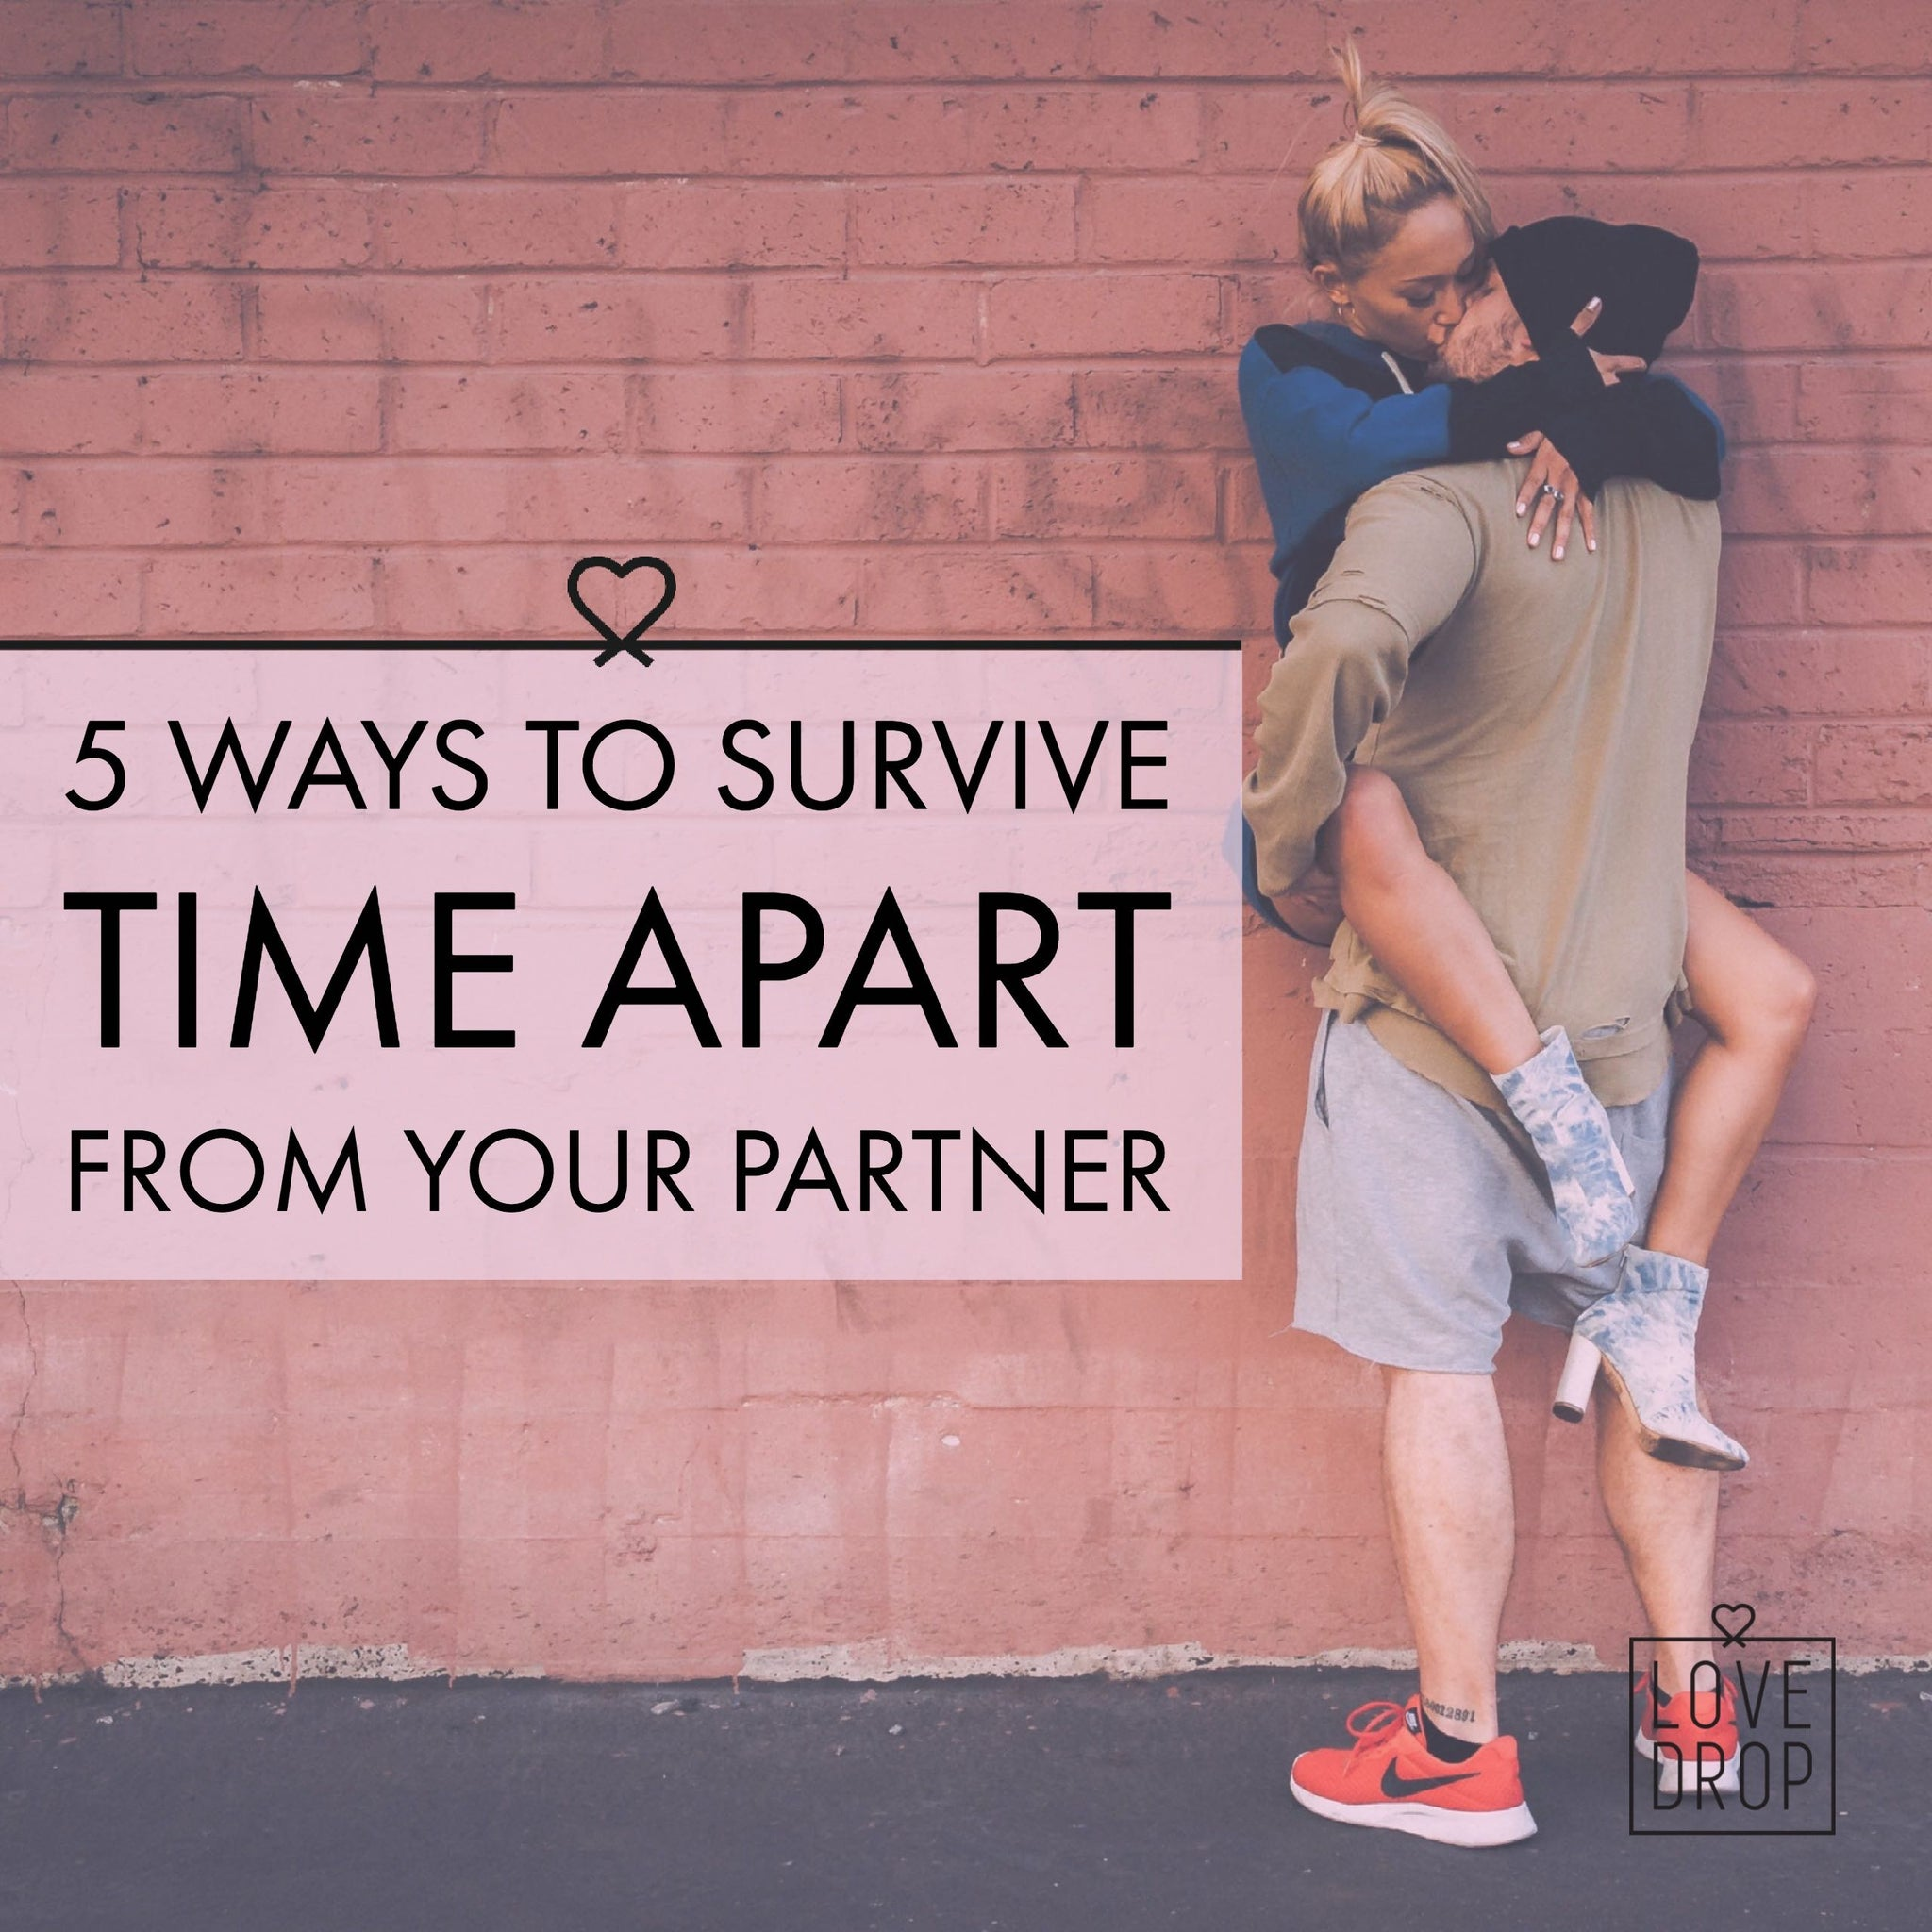 5 ways to survive time apart from your partner